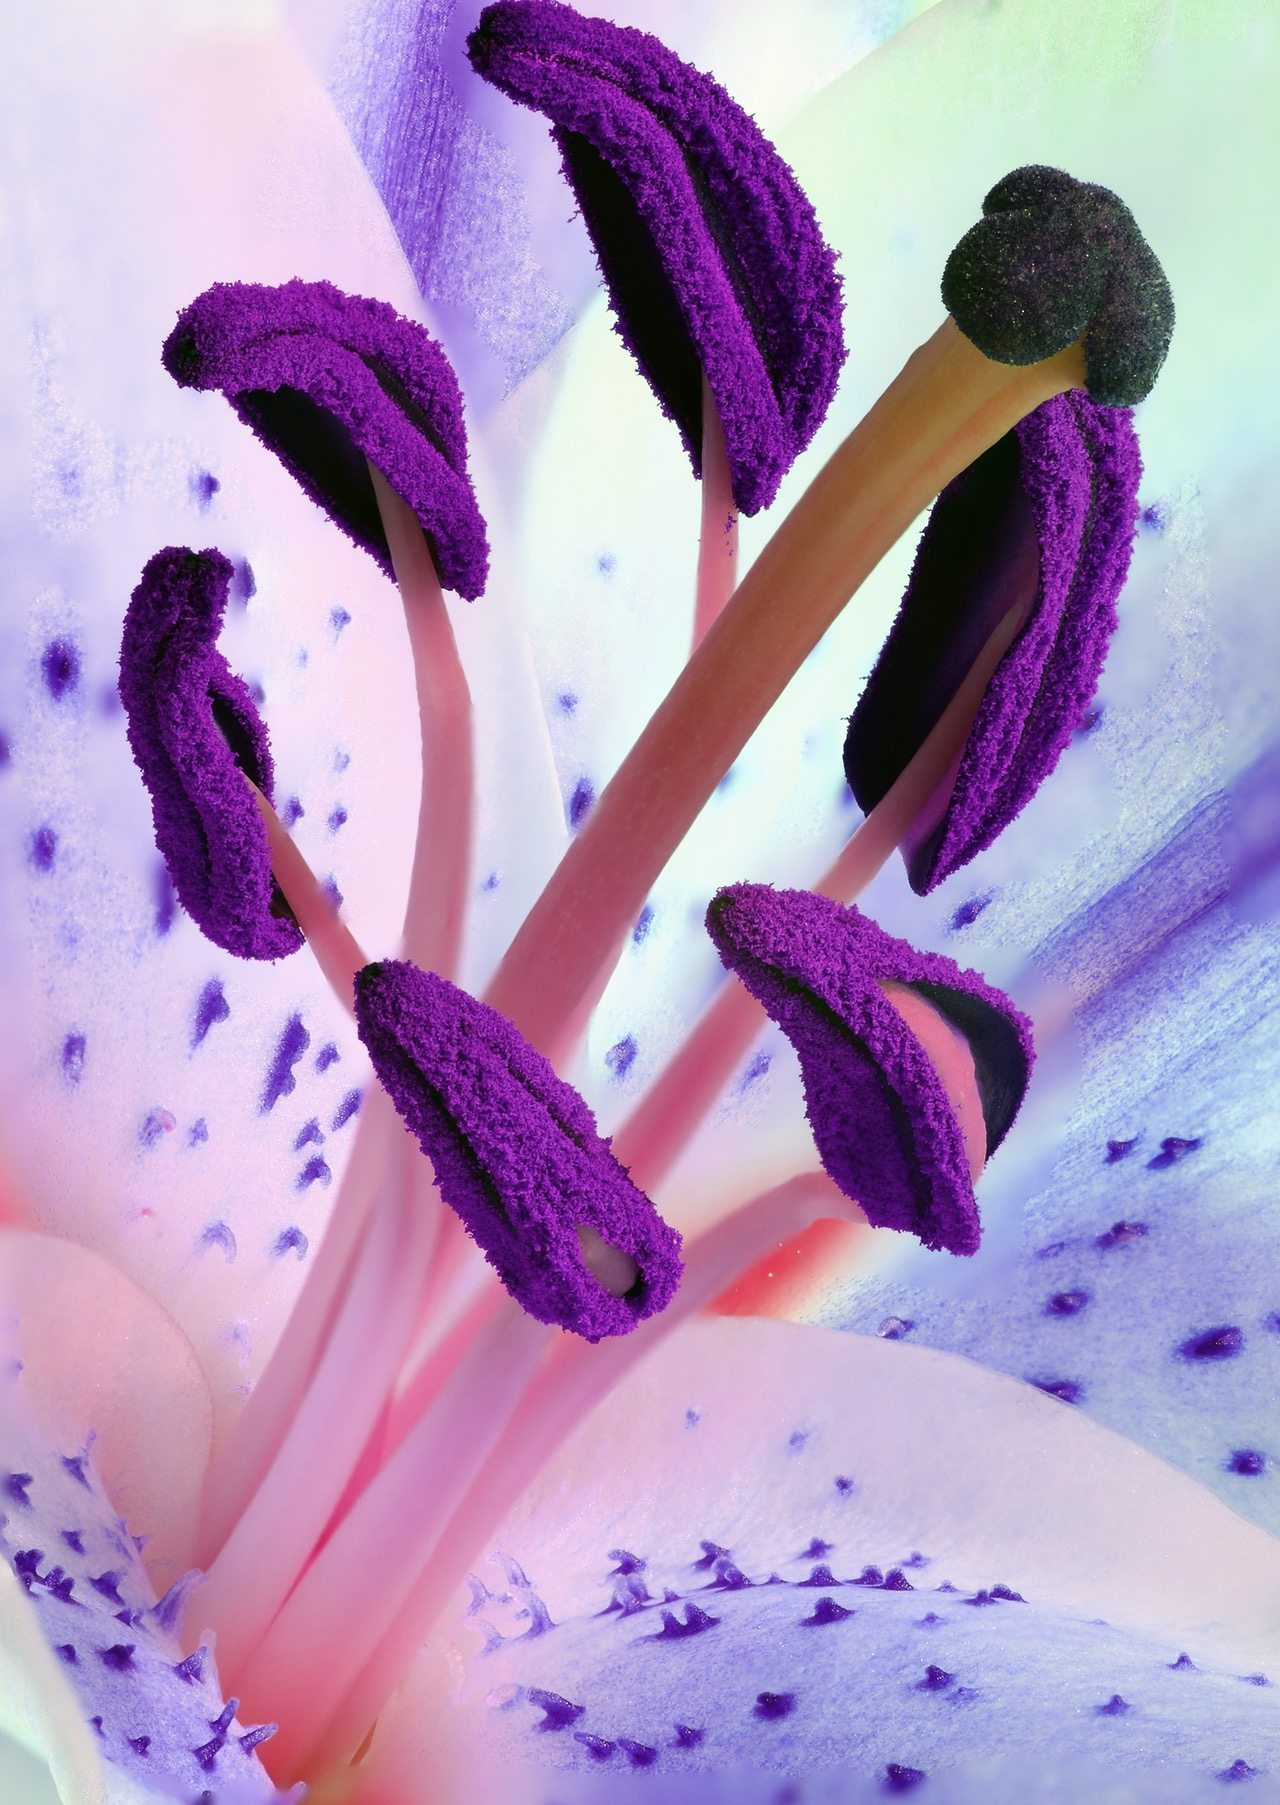 Image: the pollen of a purple iris